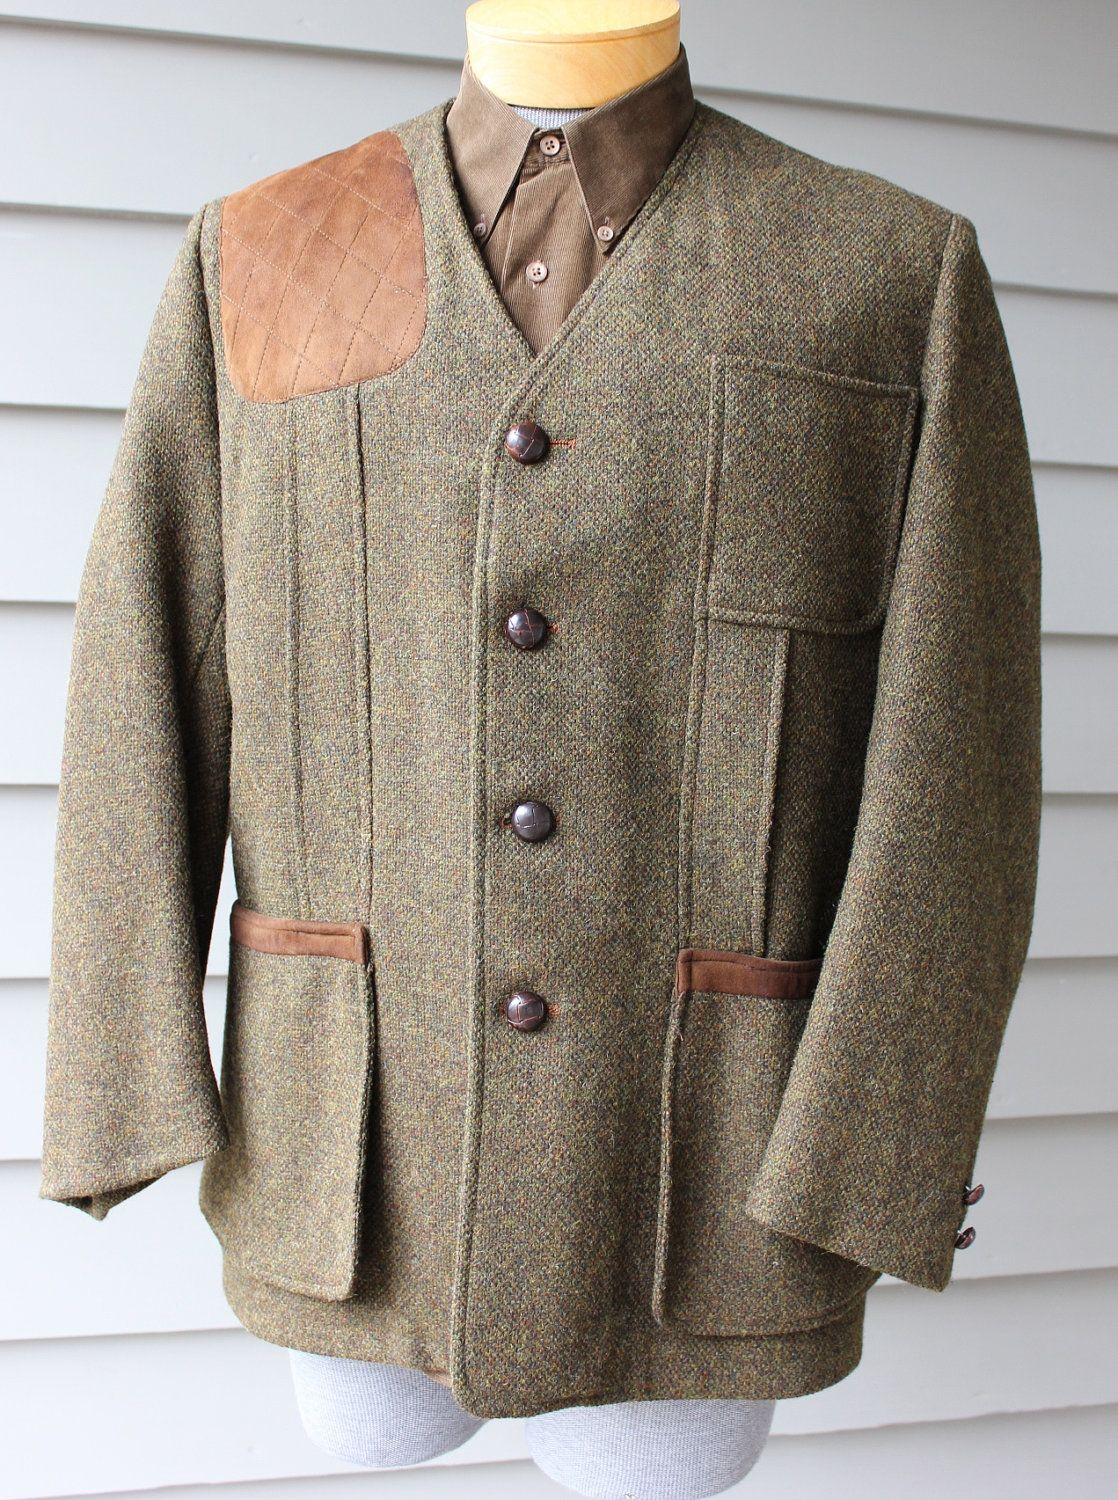 50684290006c9 Vintage Orvis tweed shooting jacket. Hunting Suit, Hunting Jackets, Mens  Tweed Suit,